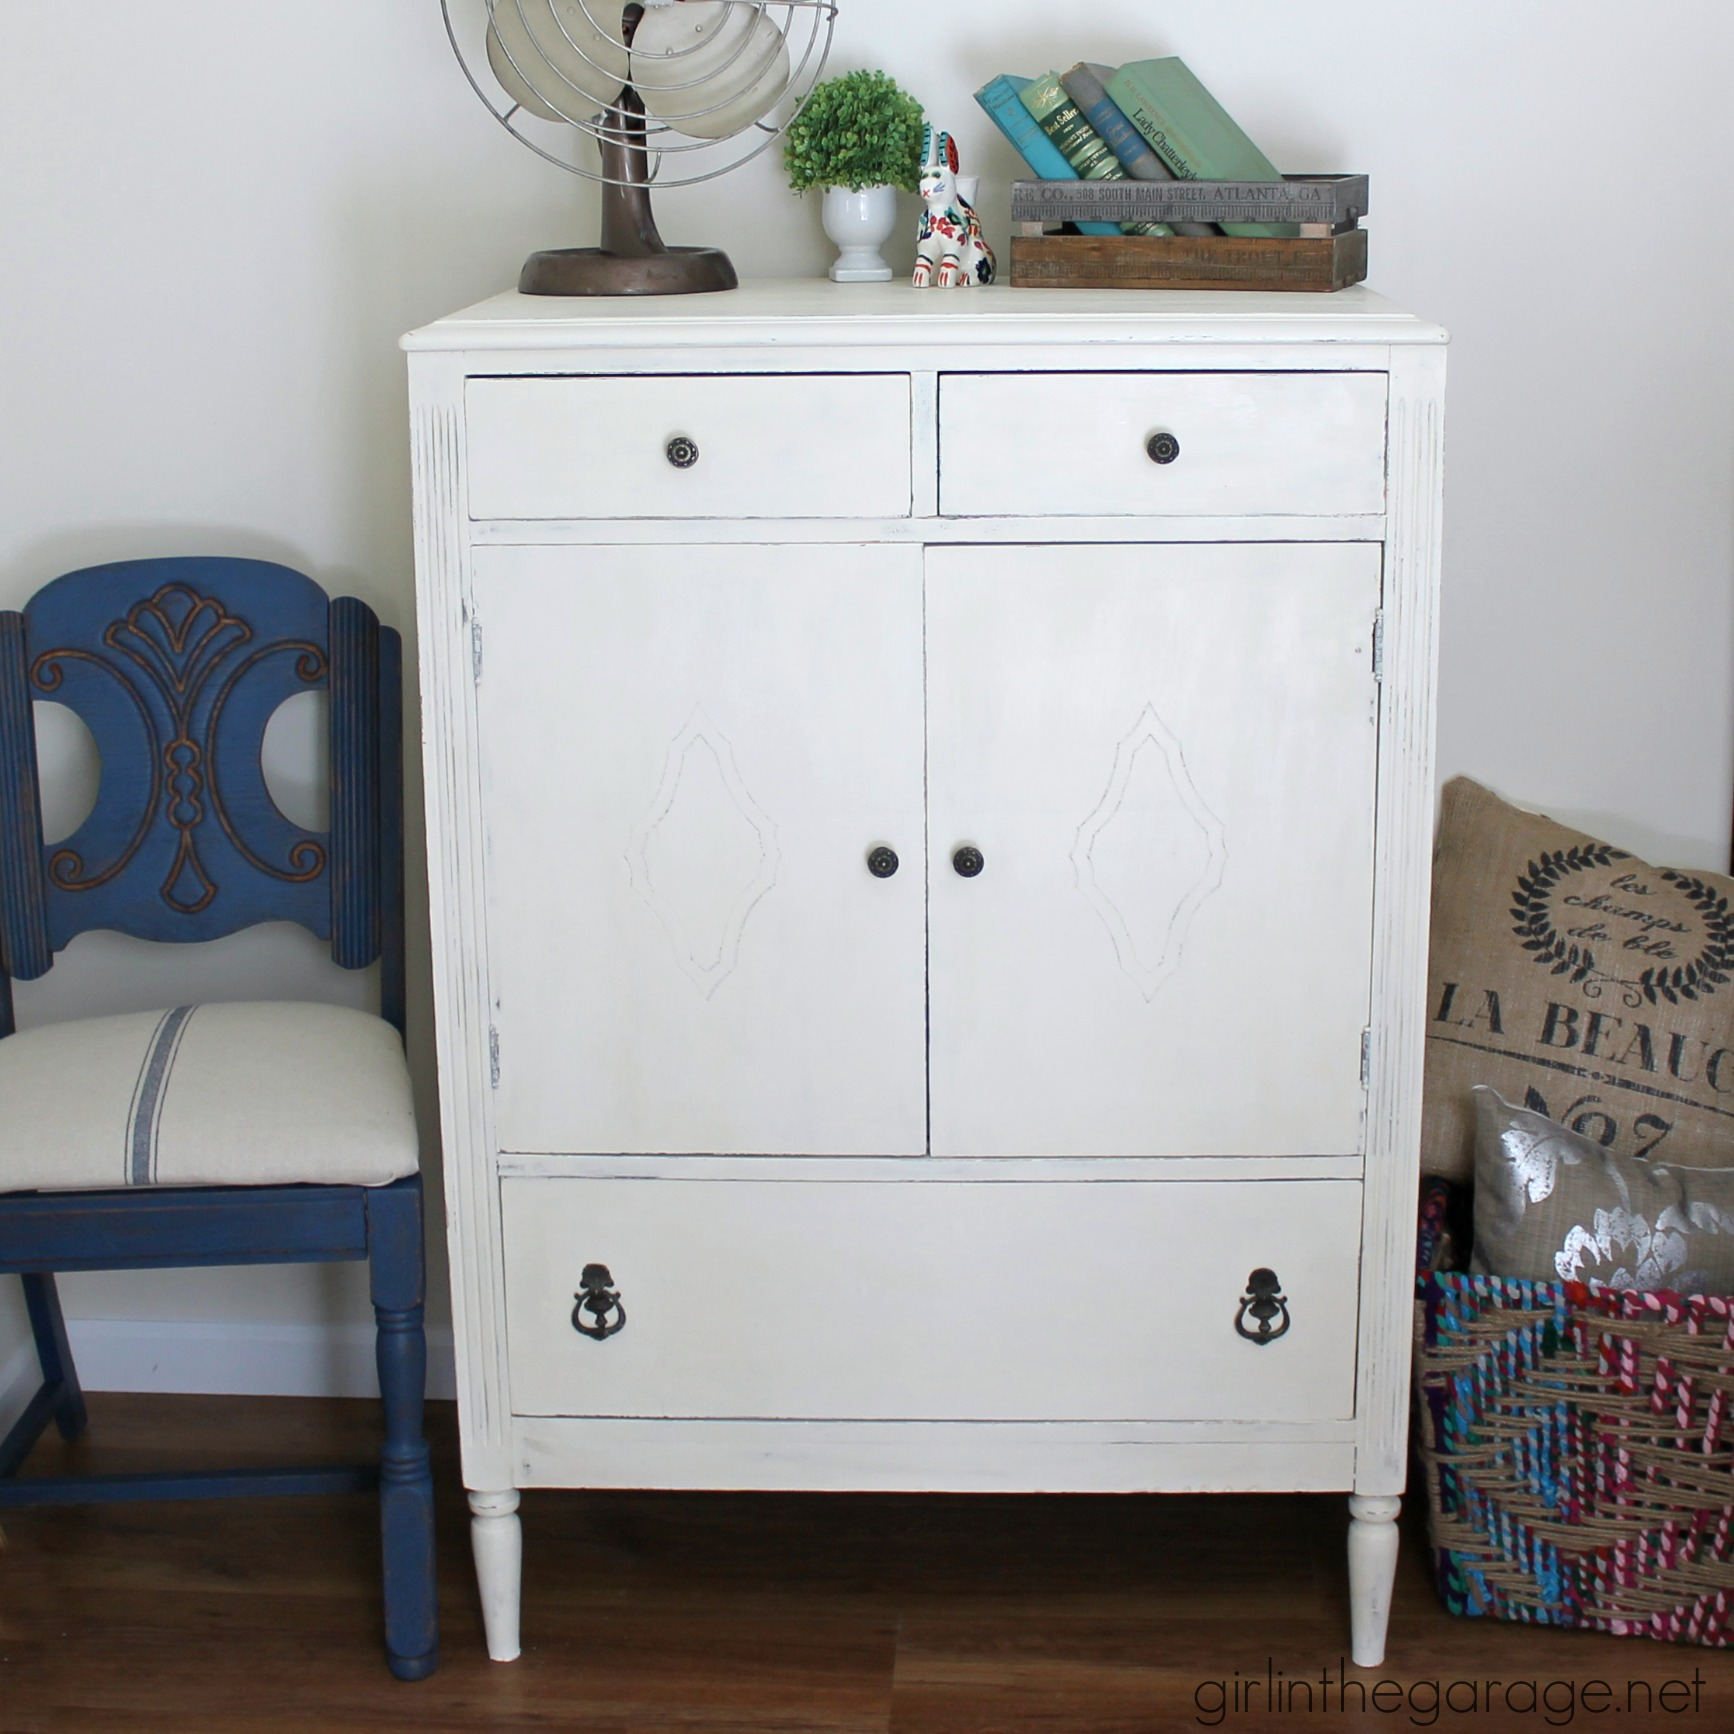 See The Before And After Of This Antique Dresser Makeover I Painted For A Client